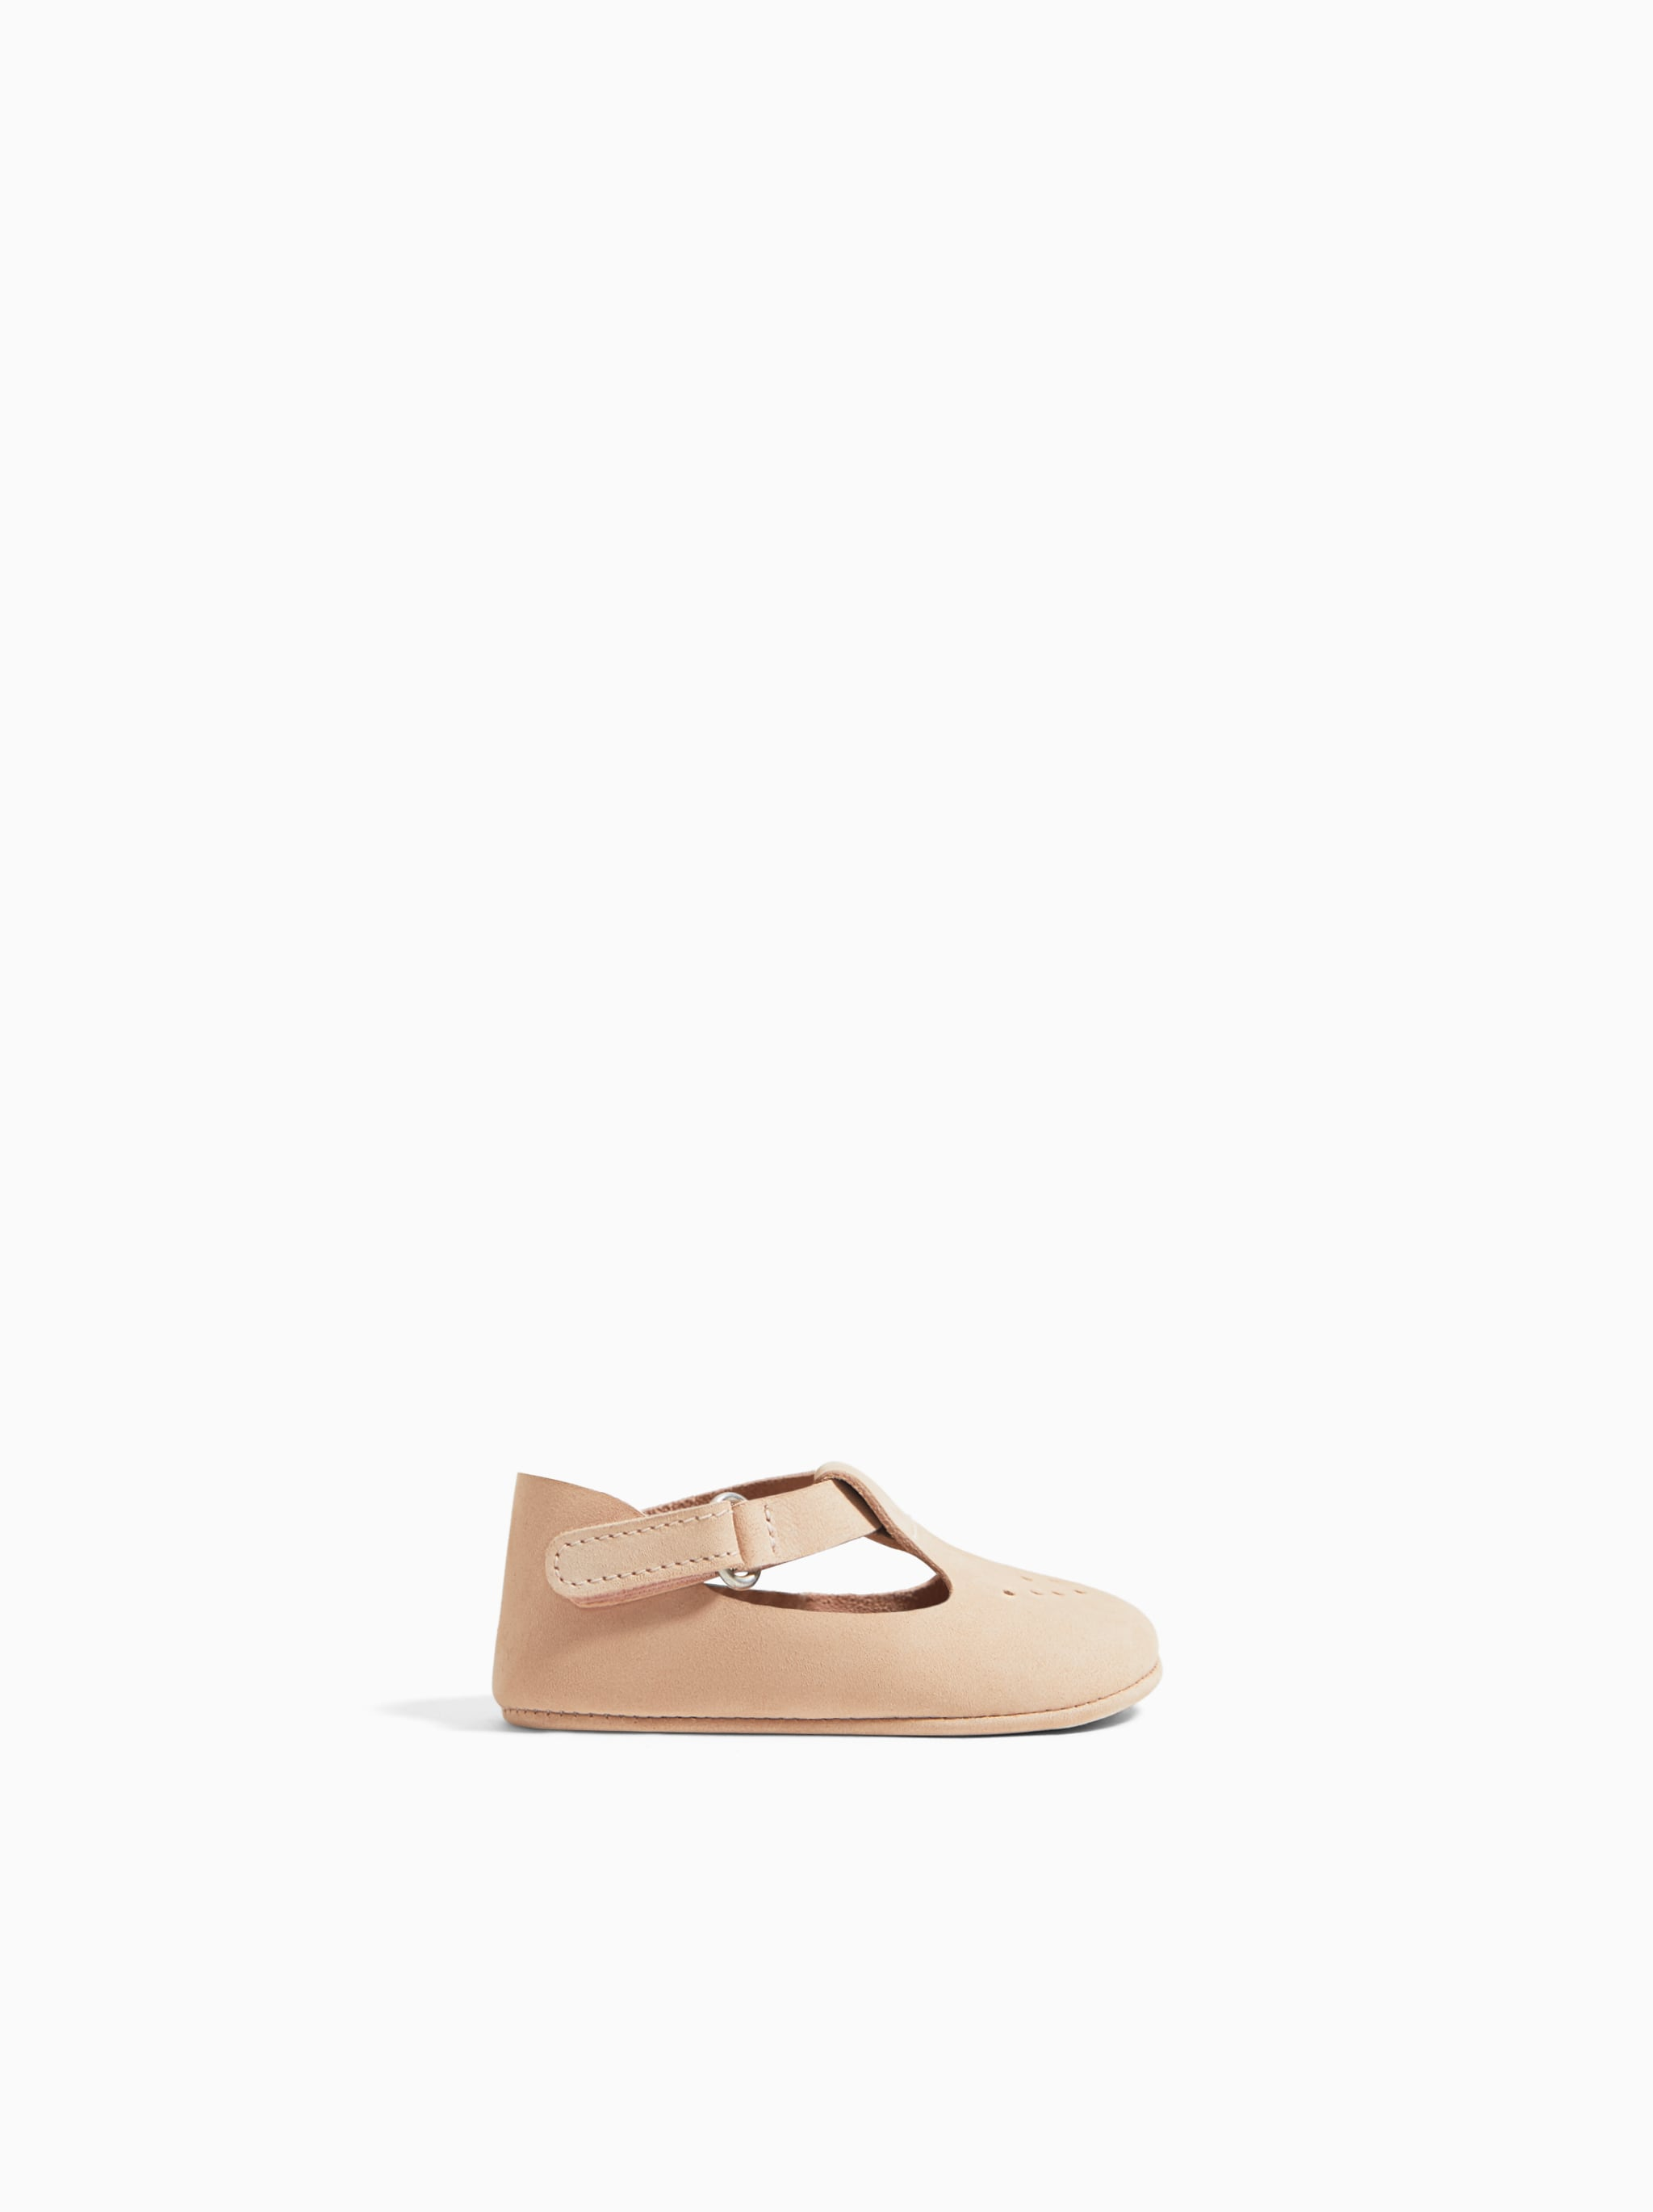 3857d33cdd2a Zara LEATHER DIE-CUT SHOES